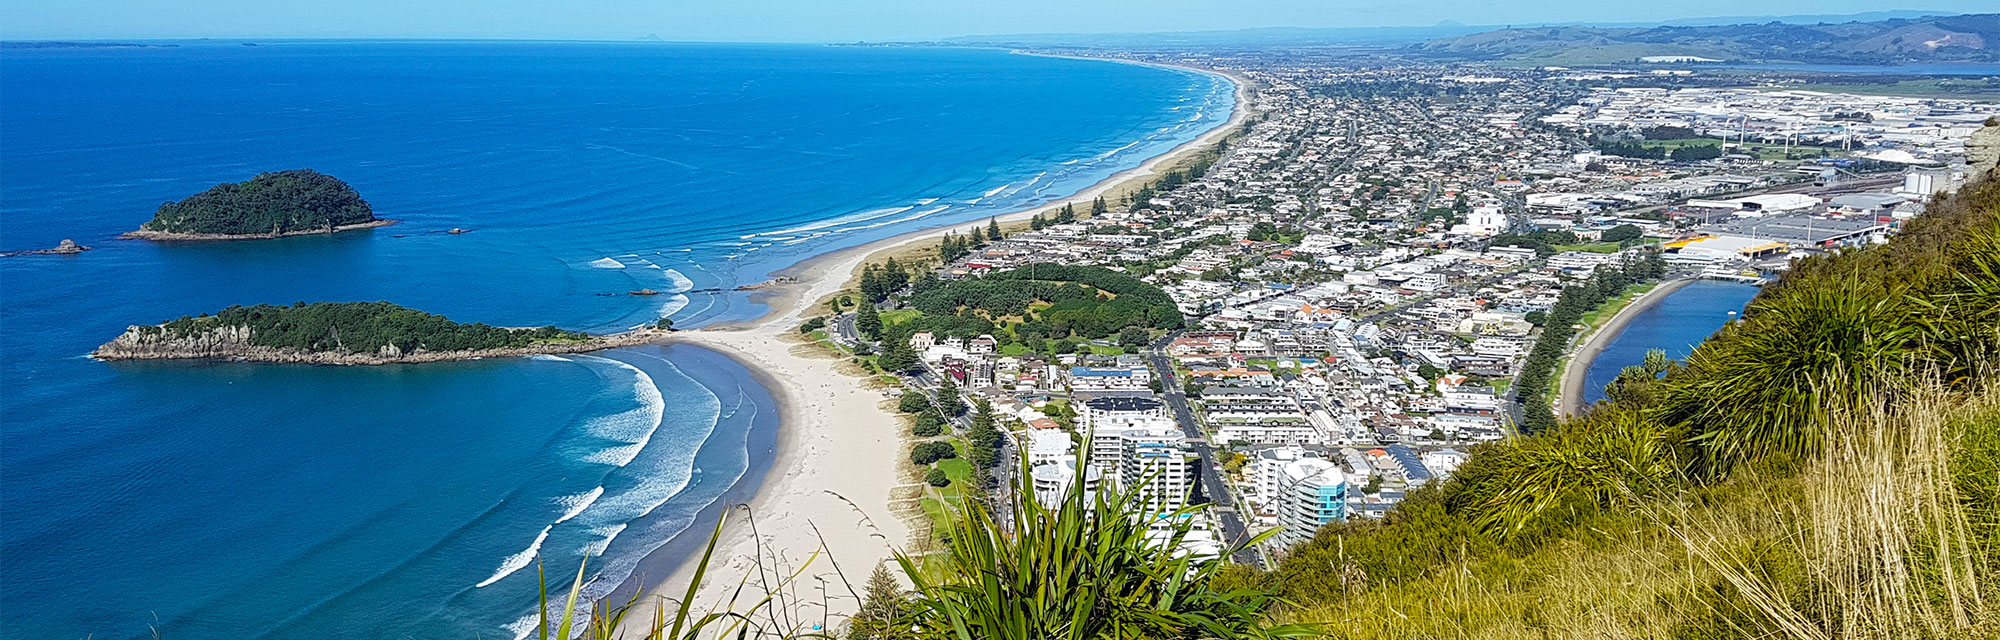 The Bay of Plenty has the best beaches in NZ.Withperfectwhitesand andcrystalblue waters, youwon'tfind a better place to swim, surf, sunbathe and socialise.